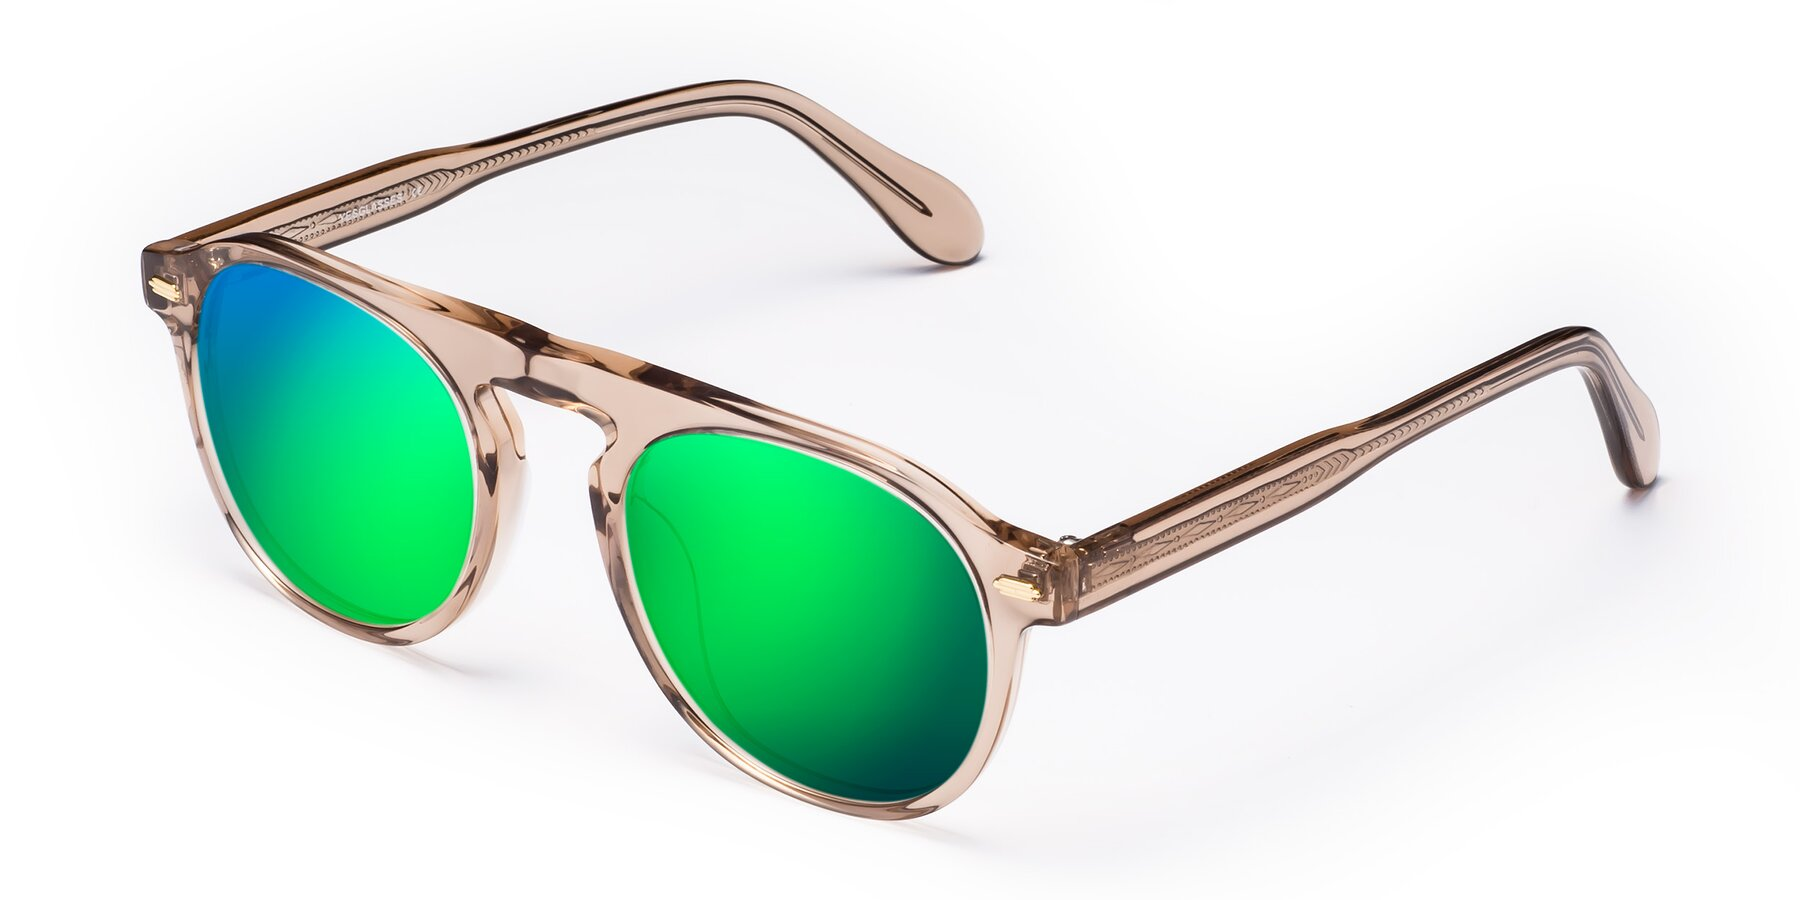 Angle of Mufasa in light Brown with Green Mirrored Lenses